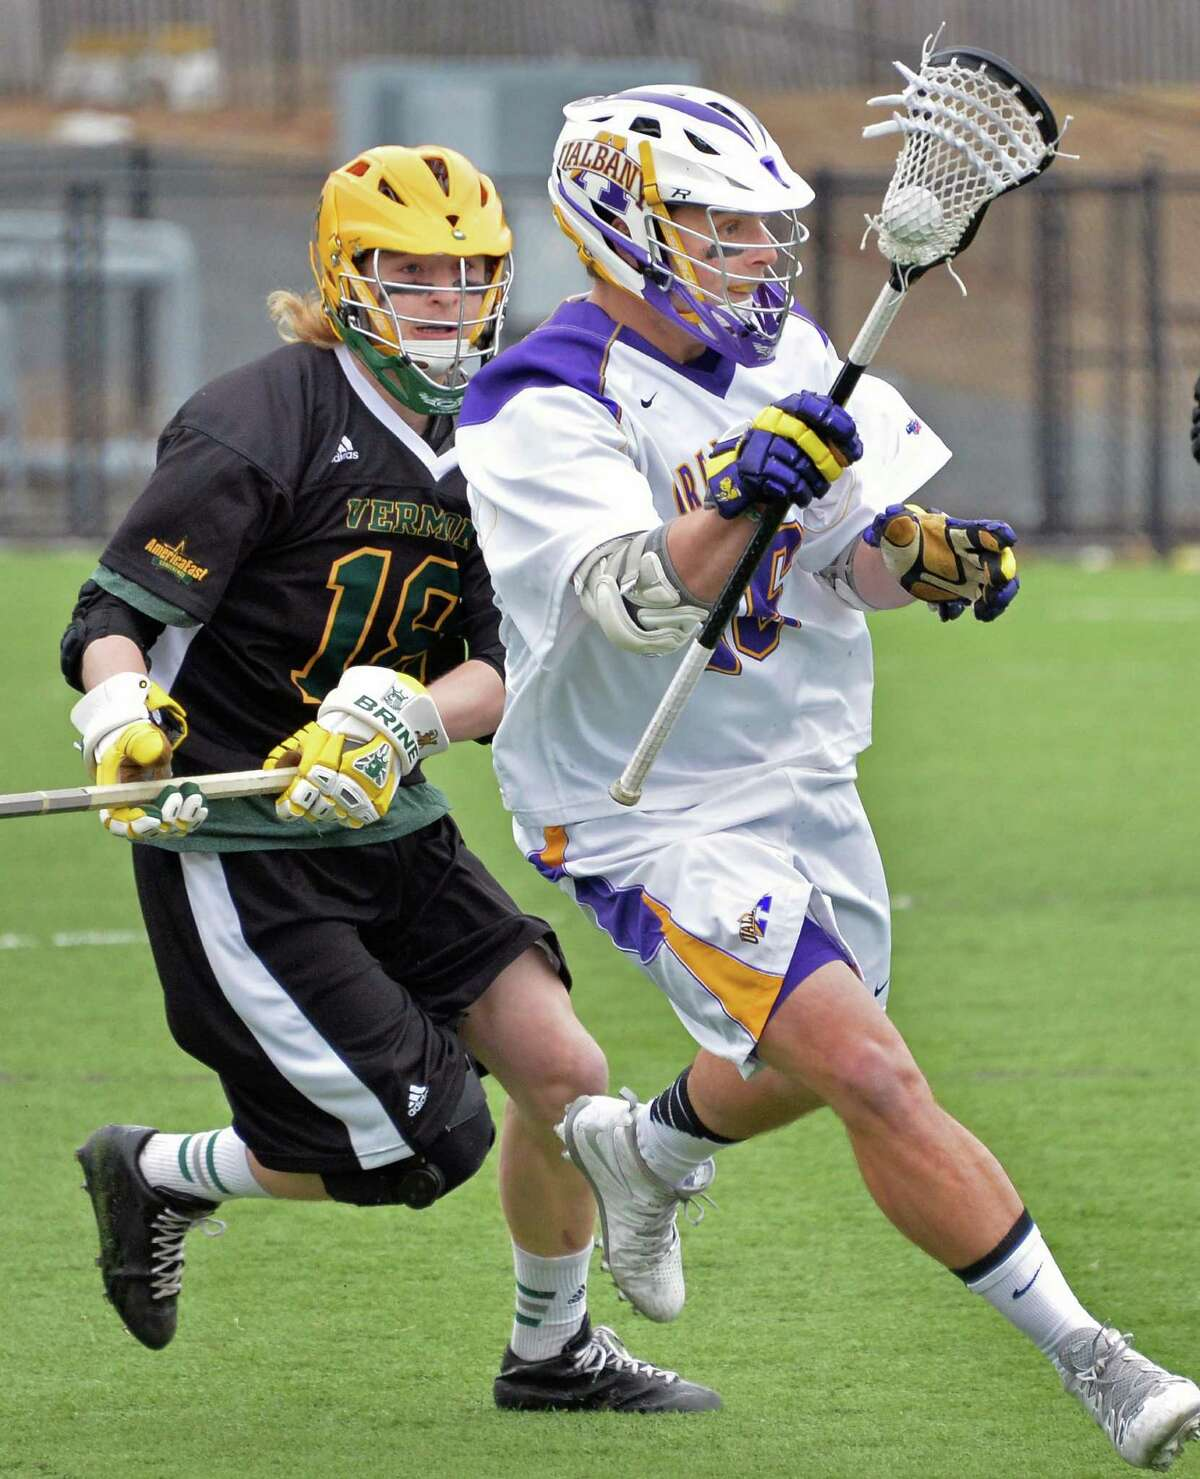 UAlbany's #16 Will Stenberg, right, gets past Vermont's #18 Hayden Jenkins during Saturday's game March 29, 2014, in Albany, NY. (John Carl D'Annibale / Times Union)